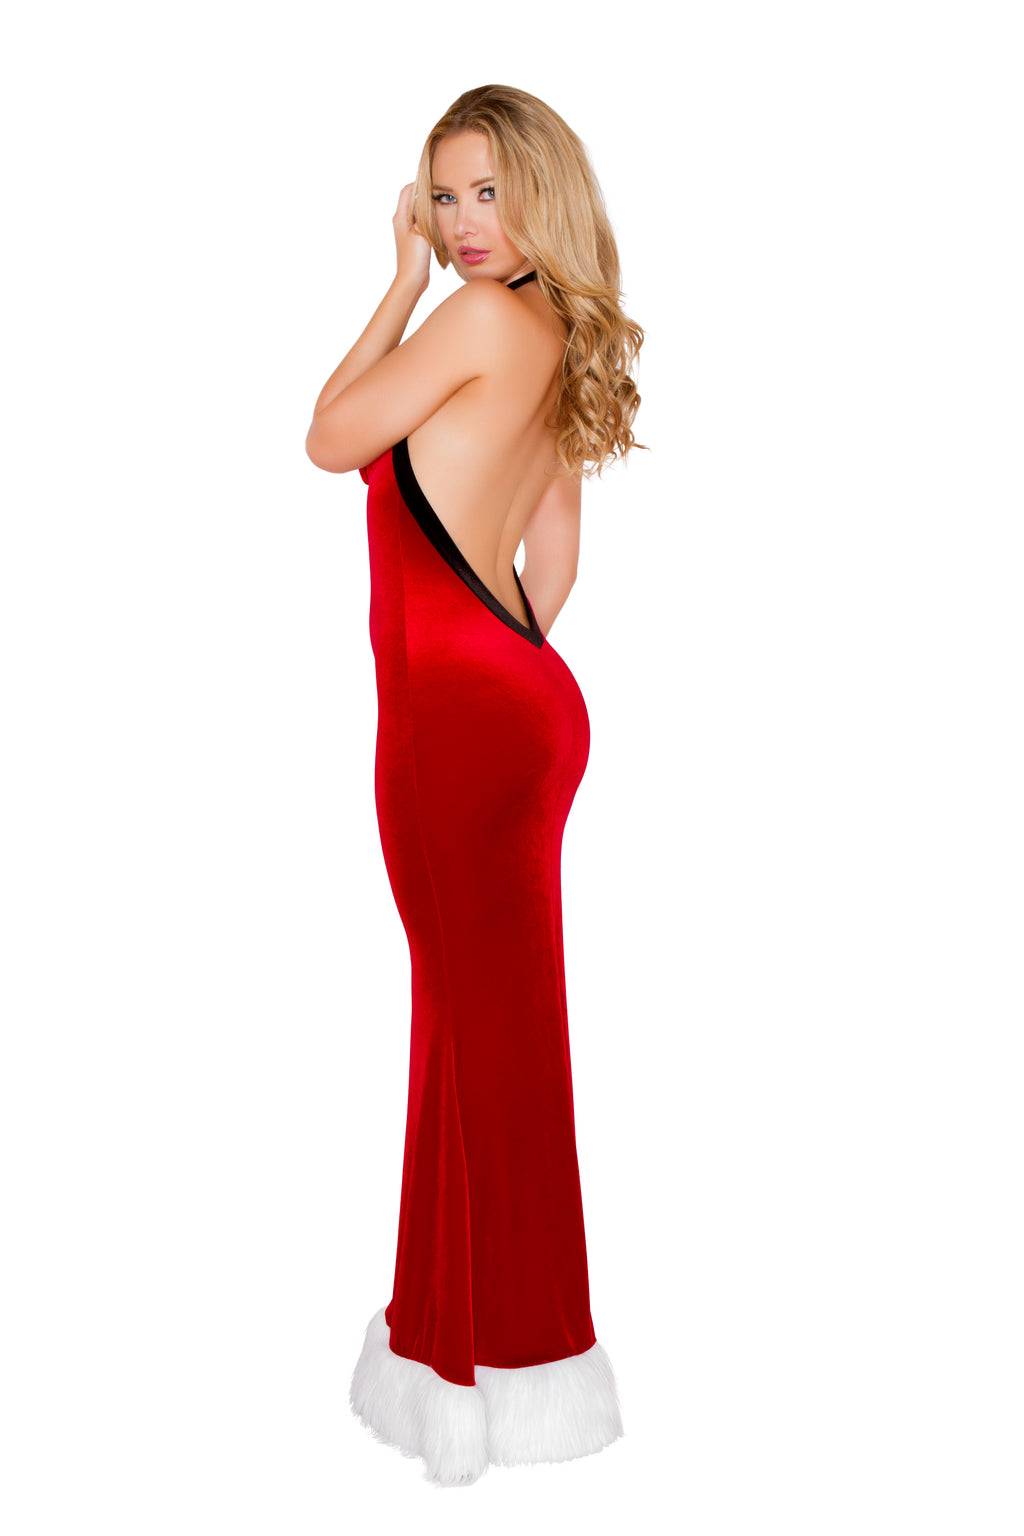 1-Piece-Christmas-Party-Red-&-Black-Backless-Maxi-Dress